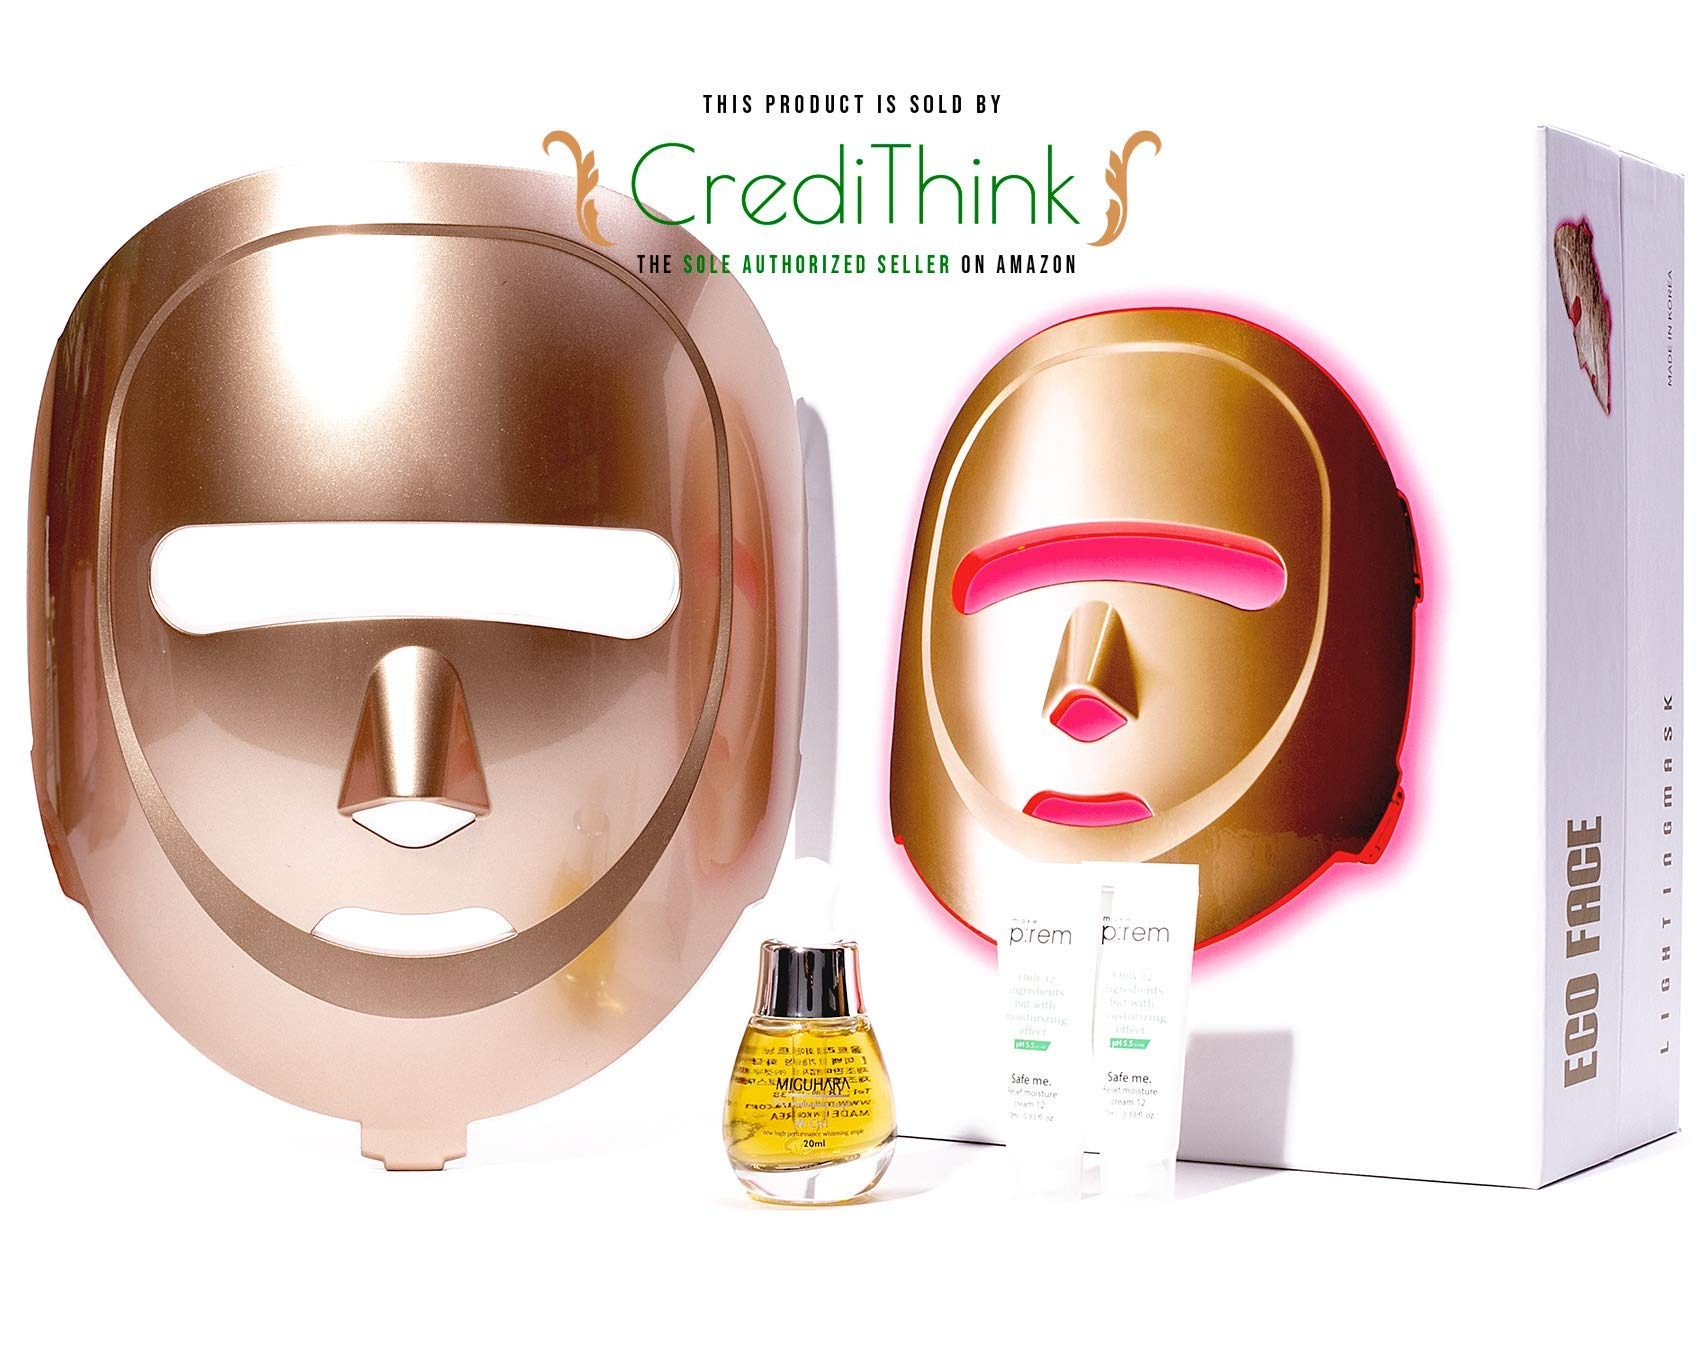 ECO FACE Near-infrared LED Photon Mask for Home Therapy - GOLDEN | 120 LED lights (60 Near-infrared & 60 Visible) | Electric Skin Rejuvenation | Clinically Tested & Being Used at Skincare Clinics